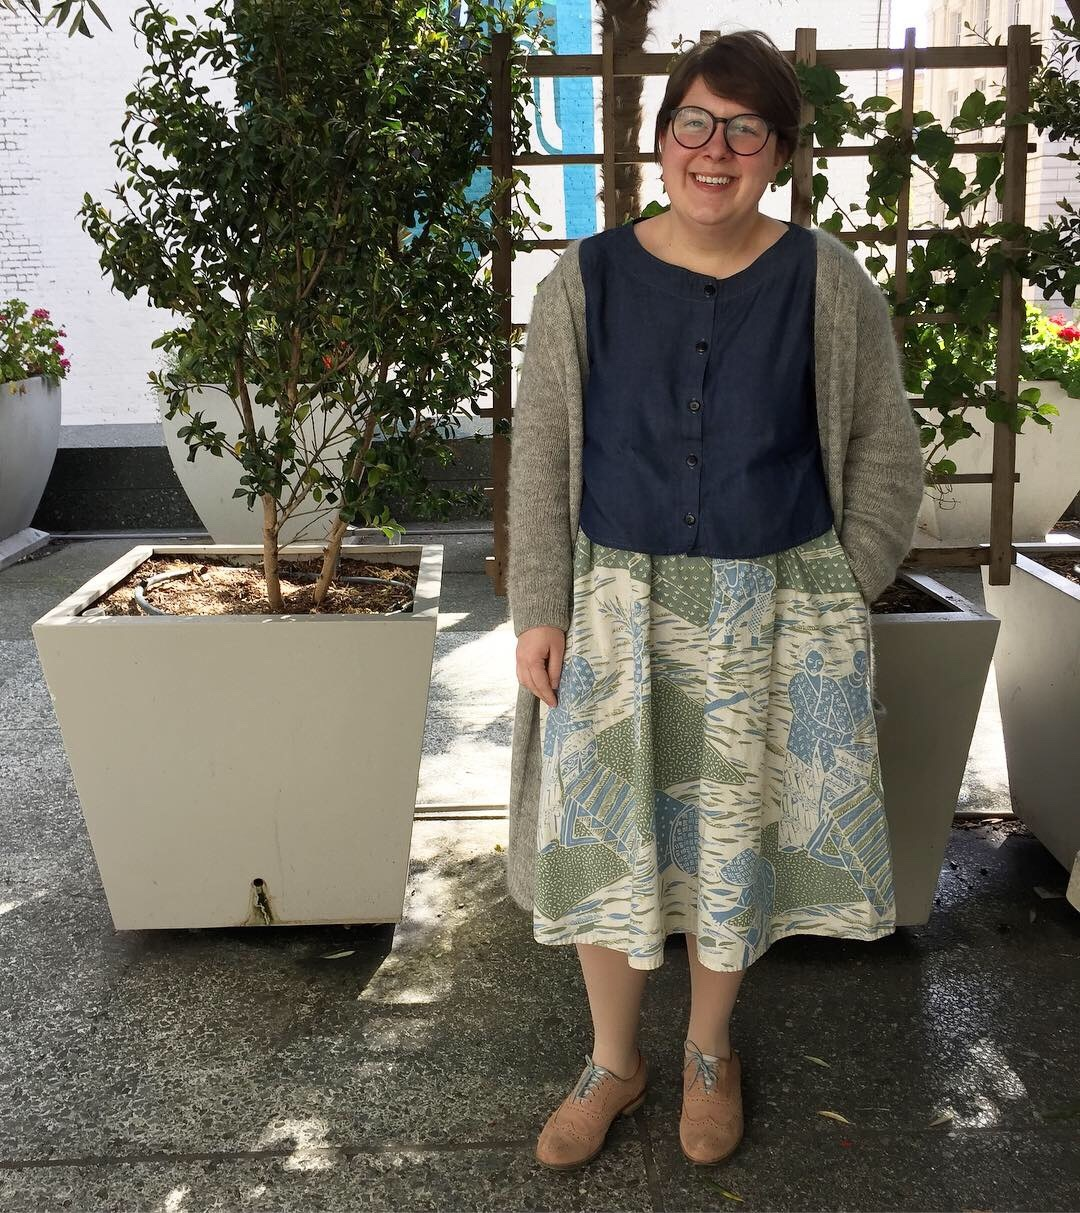 May 1: Seamwork Jenna Skirt in natural dyed Batik from Indonesia that I got at A Verb for Keeping Warm (I made it in 2018 for my wedding brunch), with a Maya Top and my No Frills Cardigan.